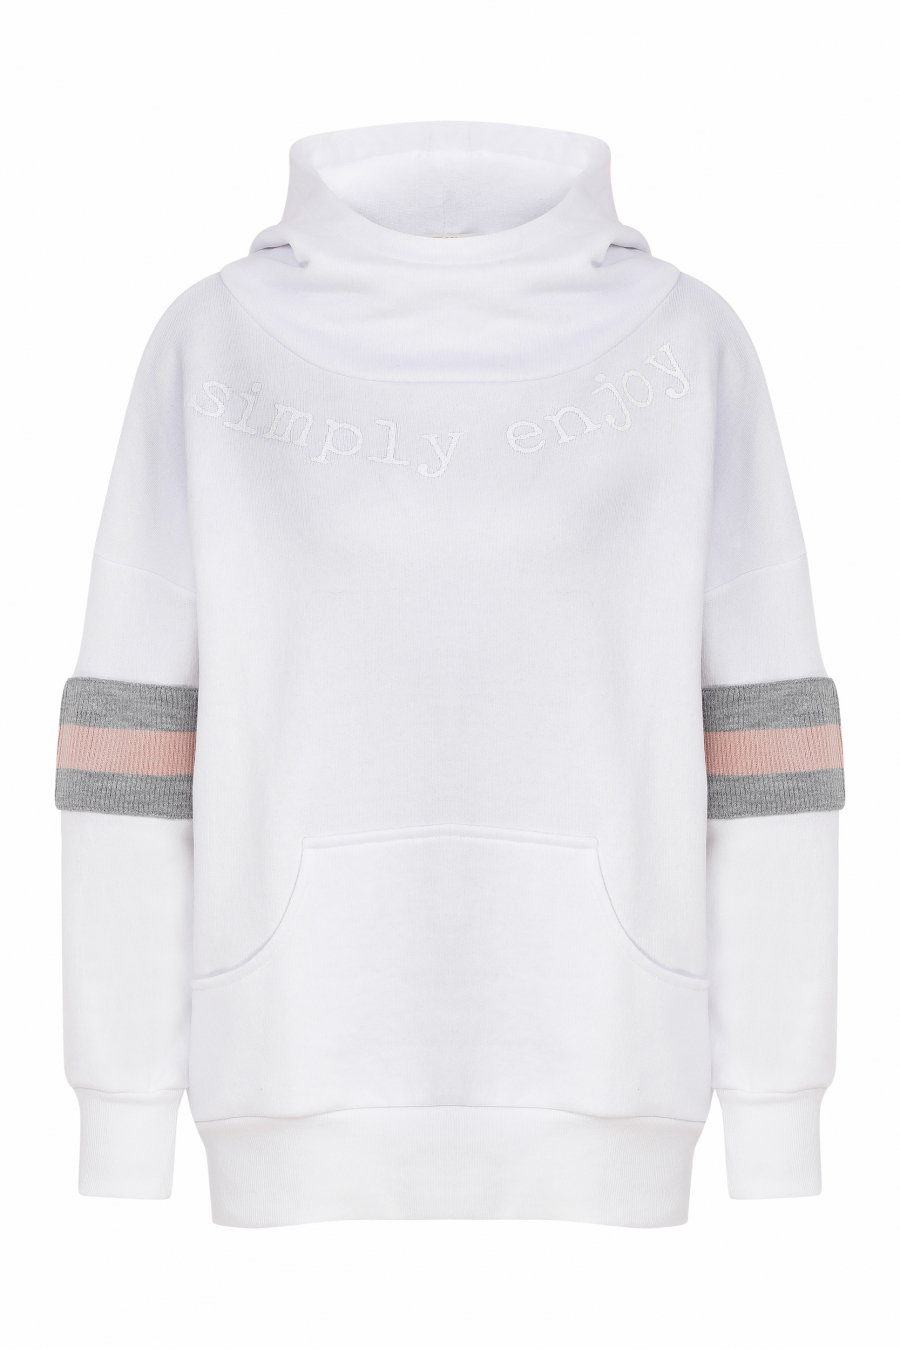 Enjoy Sweatshirt